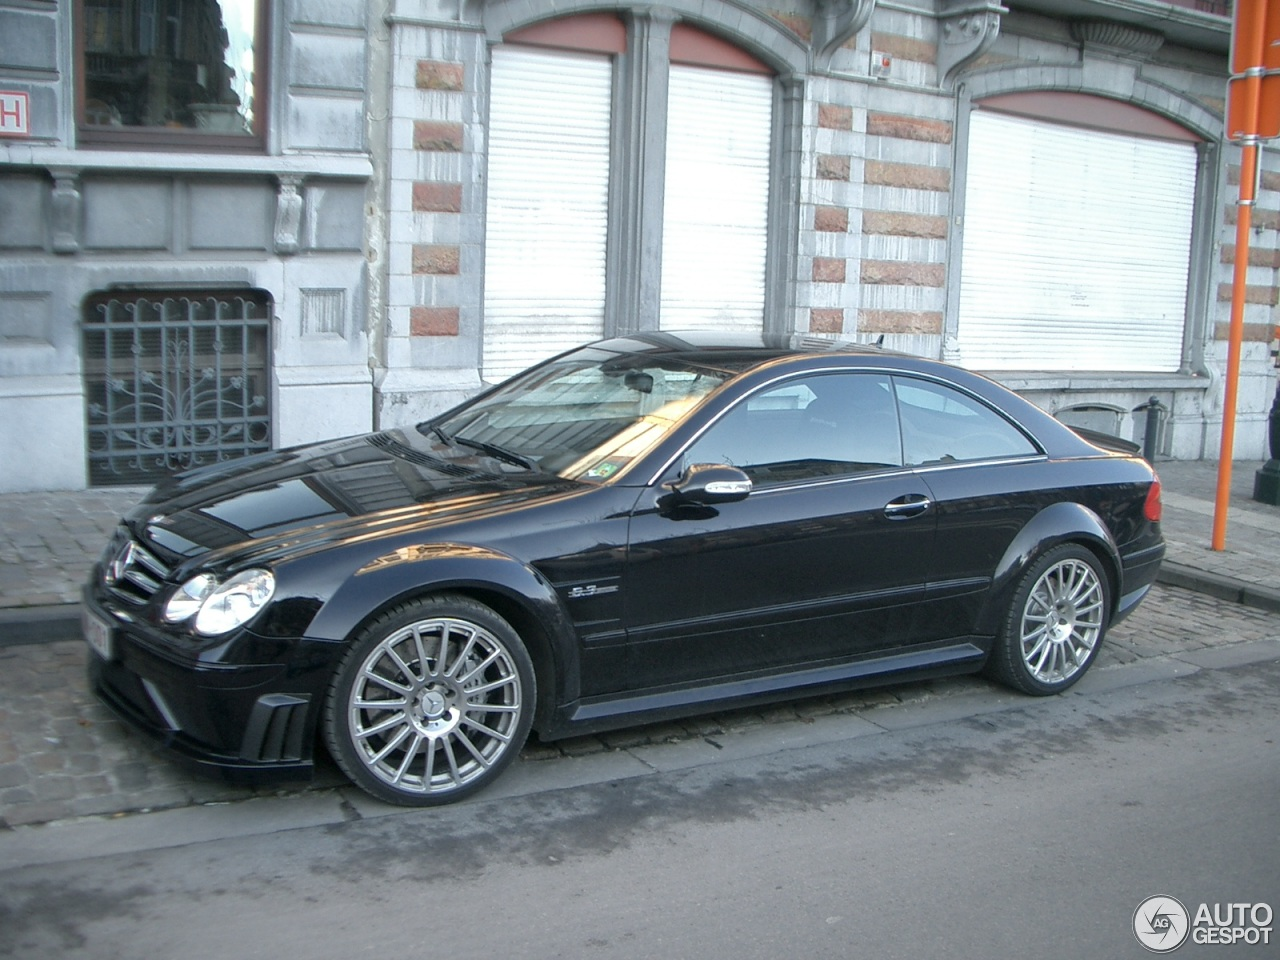 Mercedes benz clk 63 amg black series 18 december 2012 for Mercedes benz clk 2012